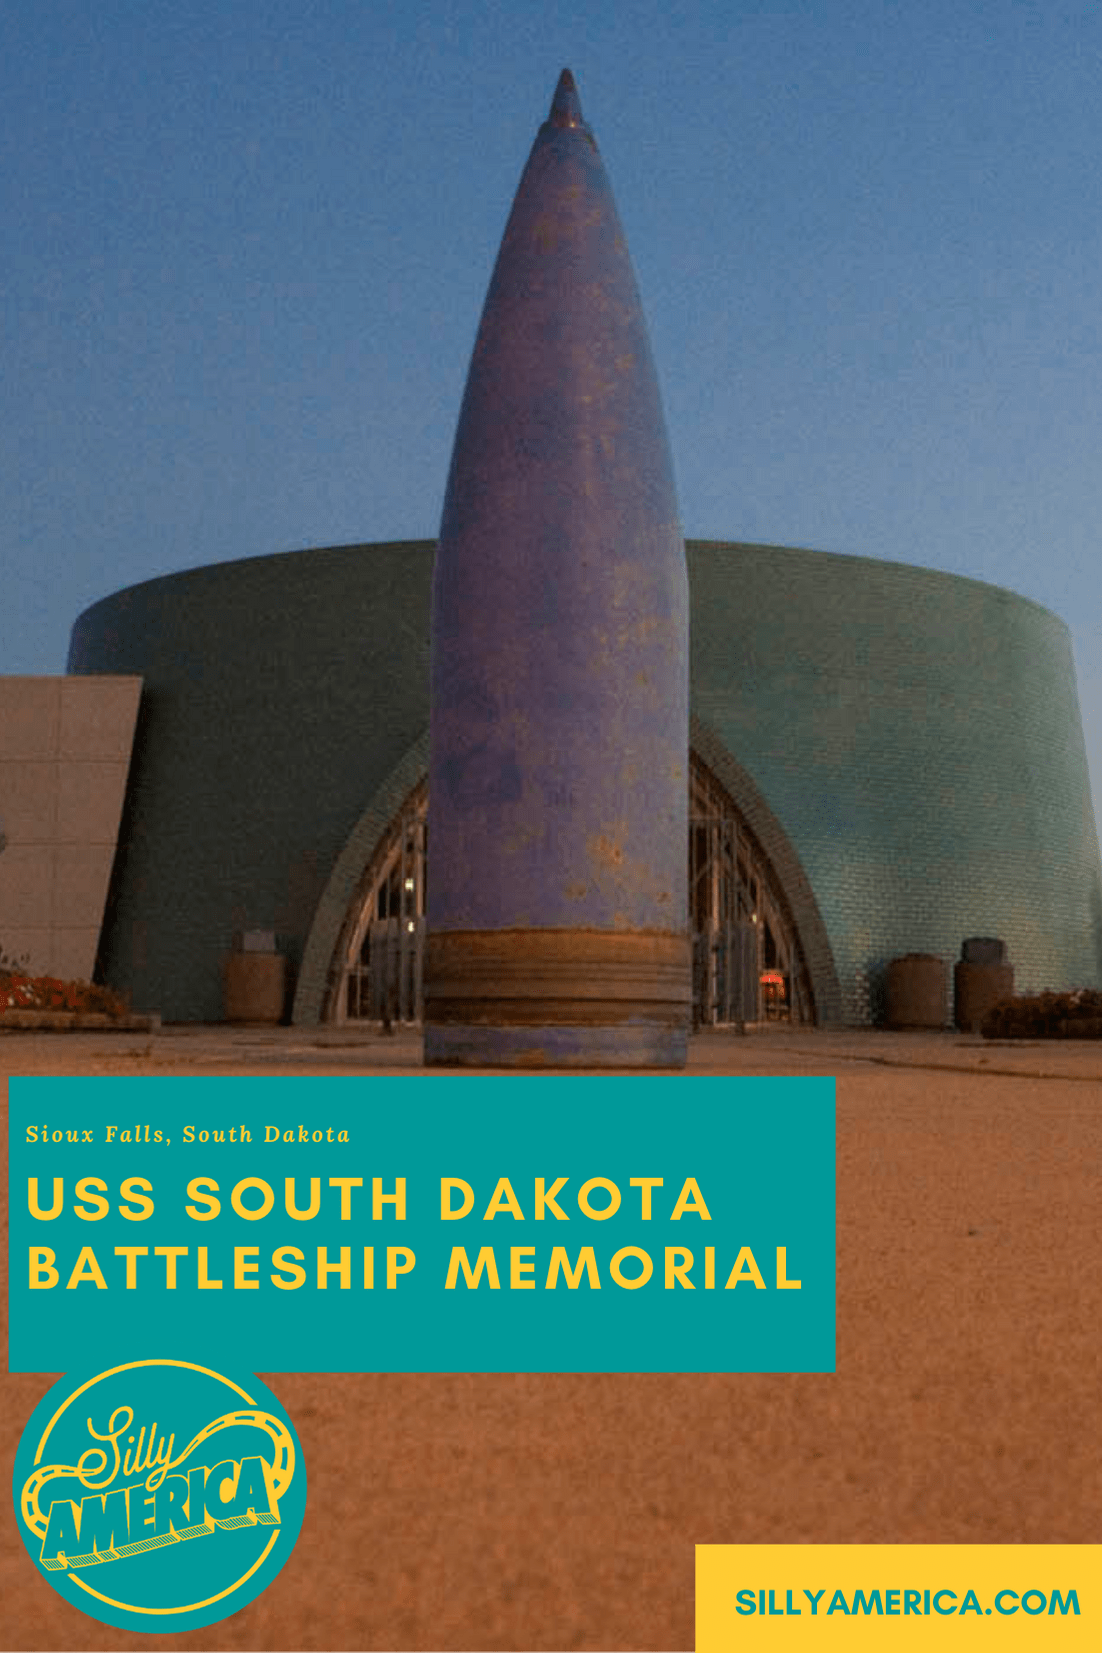 The USS South Dakota Battleship Memorial in Sioux Falls, South Dakota features a full-sized concrete outline of USS South Dakota. Visit this South Dakota roadside attraction on a road trip. #SouthDakotaRoadsideAttractions #SouthDakotaRoadsideAttraction #RoadsideAttractions #RoadsideAttraction #RoadTrip #SouthDakotaRoadTrip #ThingsToDoInSouthDakota #SouthDakotaRoadTripItinerary #SouthDakotaBucketList #SouthDakotaSummerRoadTrip #SouthDakotaRoadTripIdeas #SouthDakotaAwesomeRoadTrip